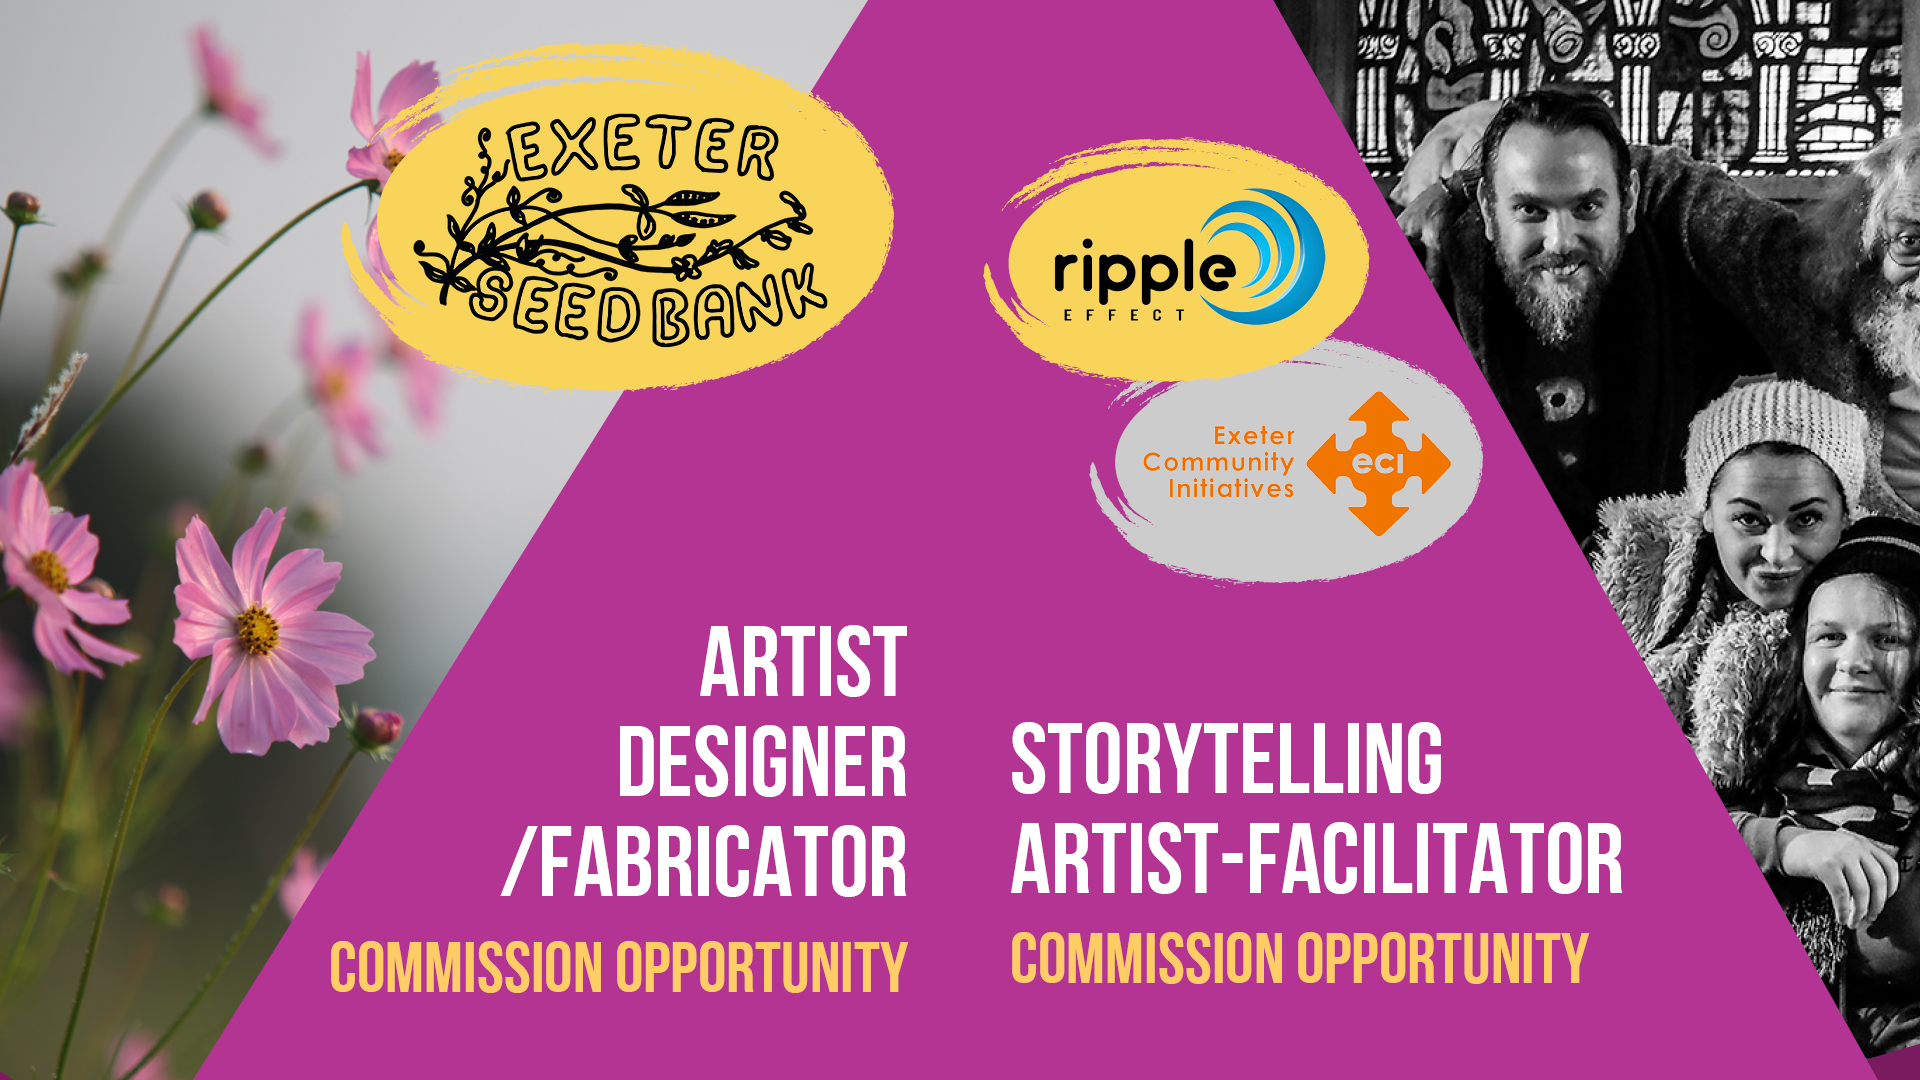 Commission opportunities: Storytelling artist-facilitator and Artist - Designer/Fabricator